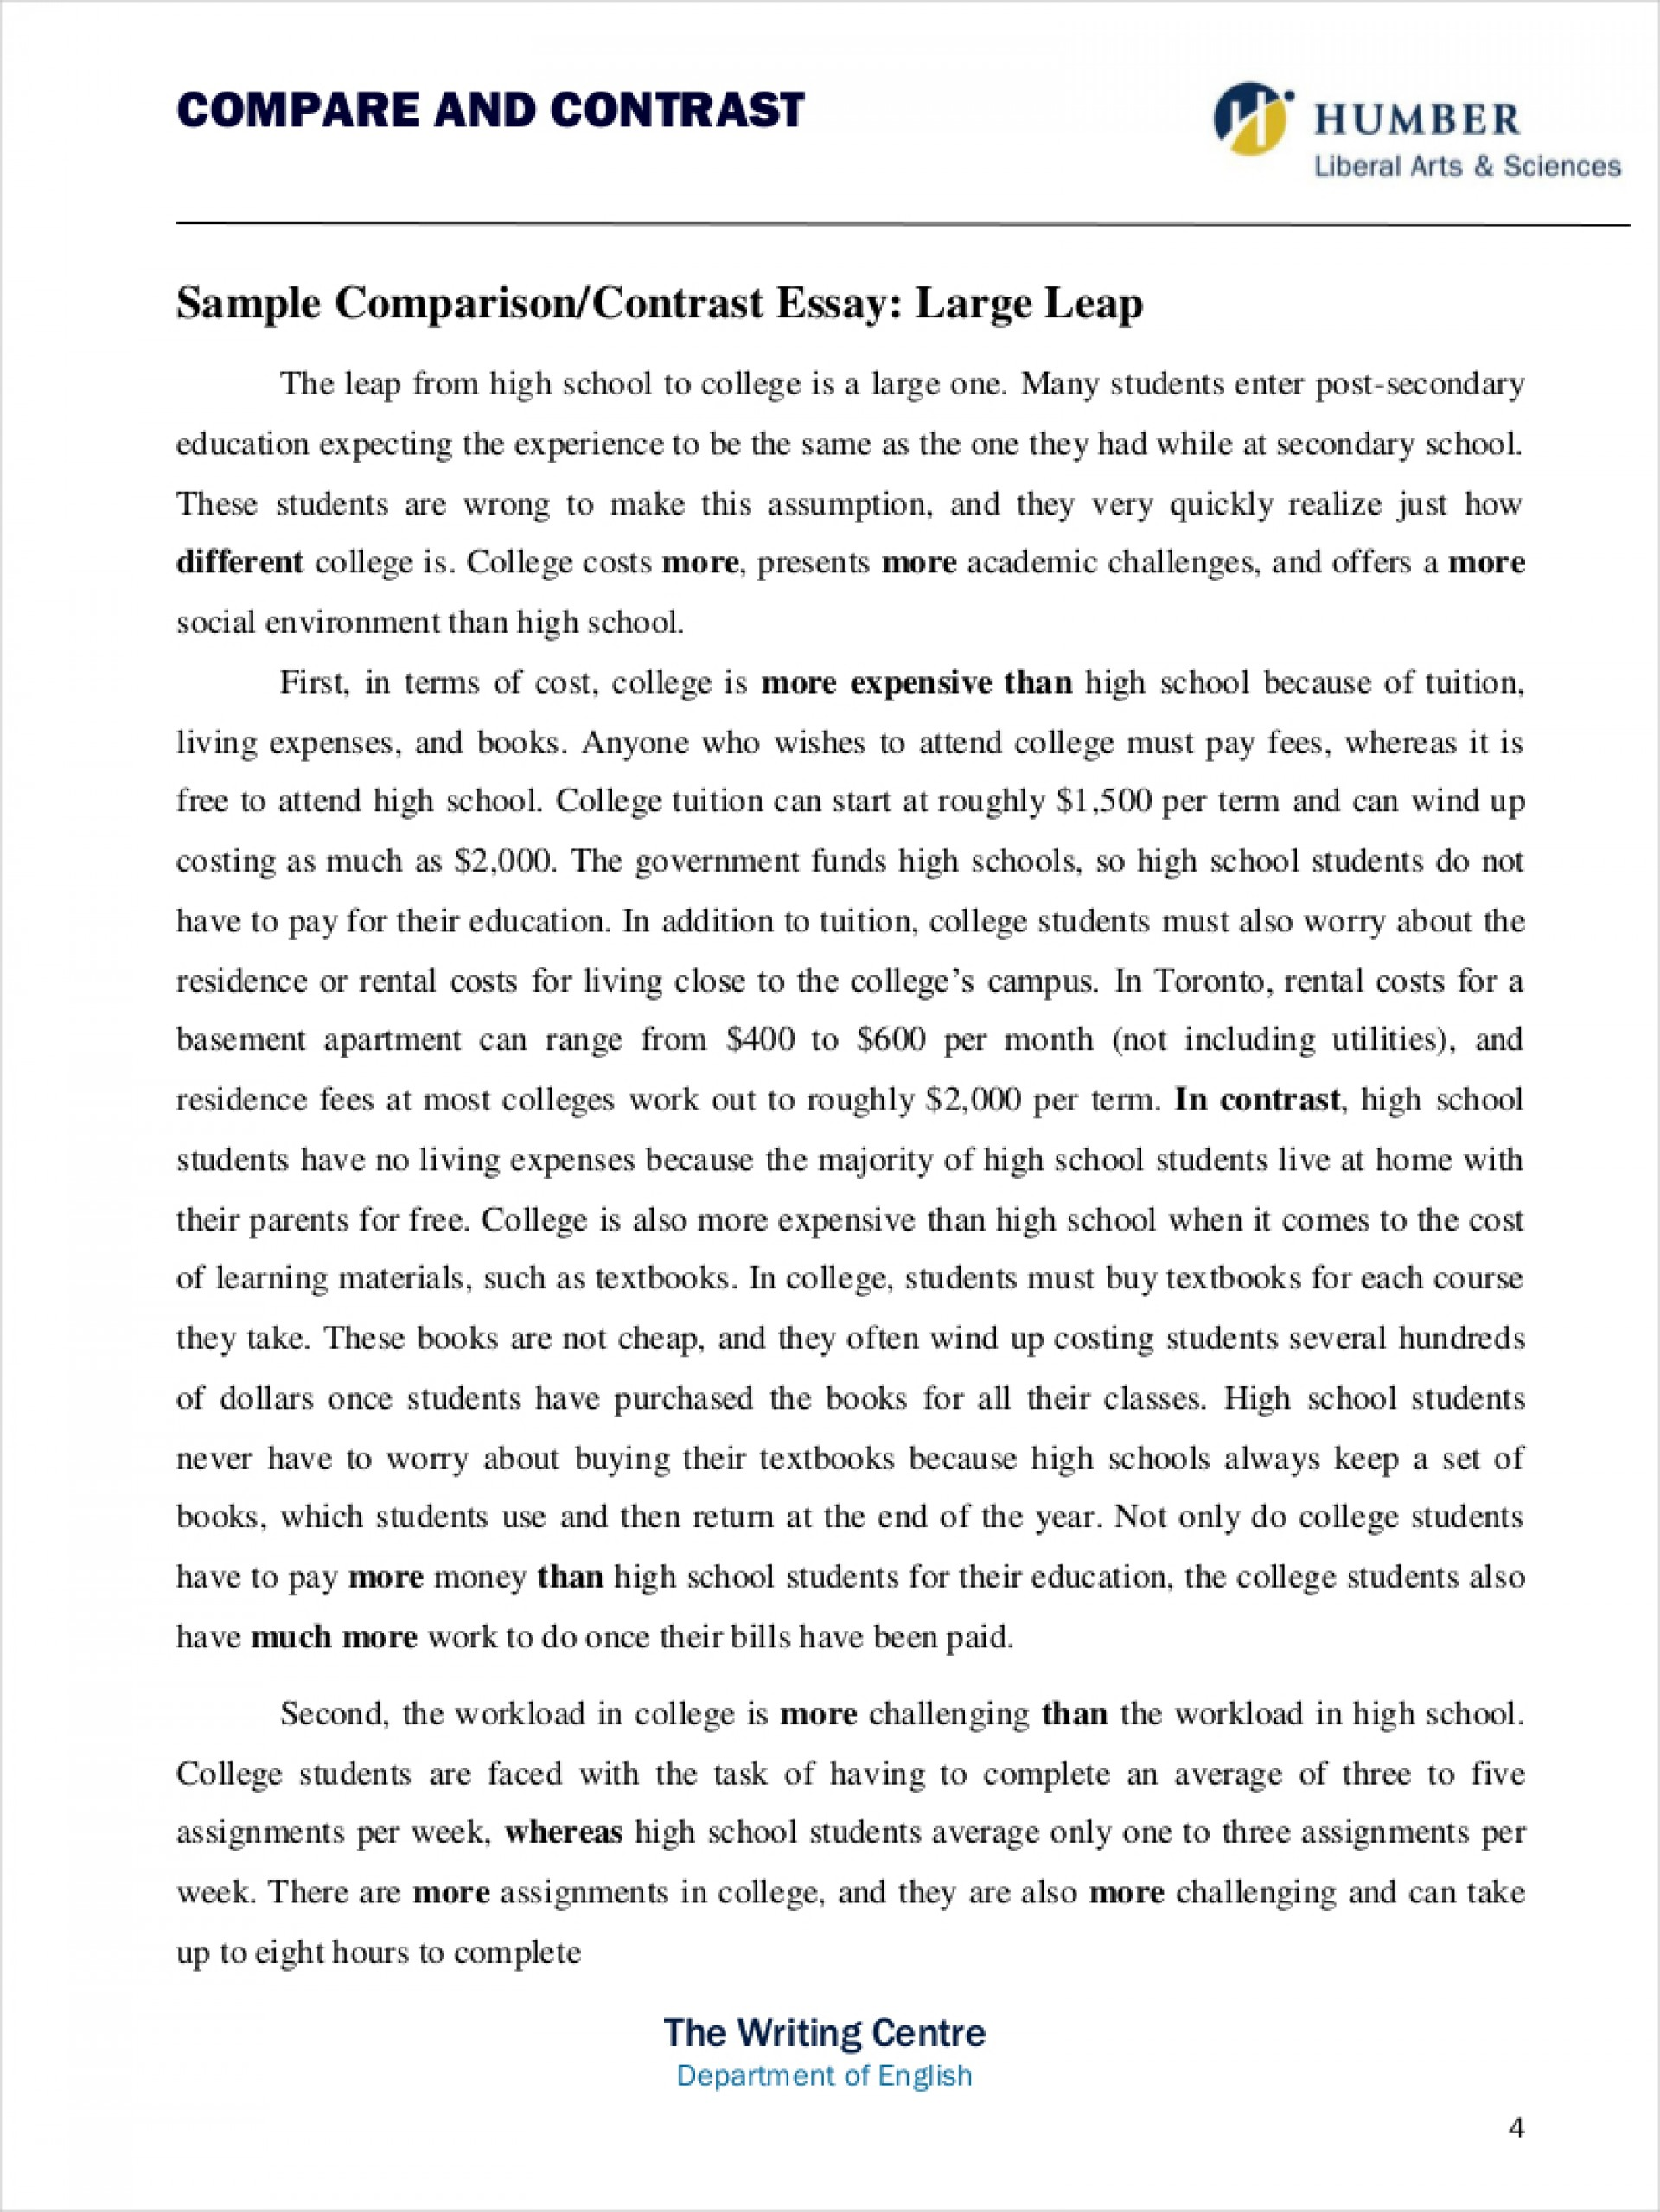 014 How To Write Compare And Contrast Essay Example Comparative Samples Free Pdf Format Download Throughout Examples Comparison Thesis Coles Thecolossus Co Within Ex Outstanding A Outline Powerpoint Introduction 1920